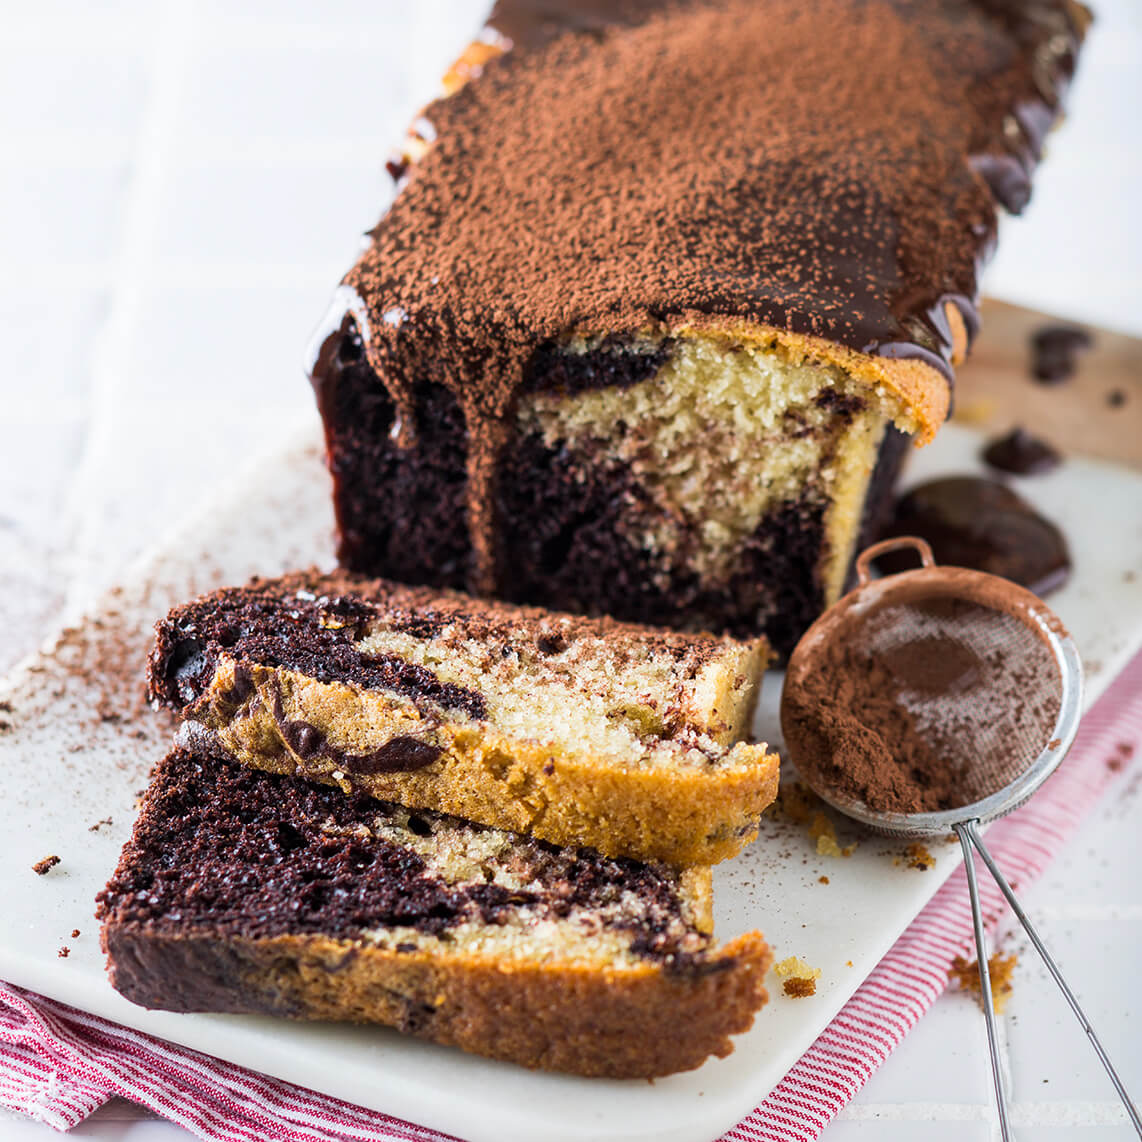 Marbled chocolate-coffee loaf